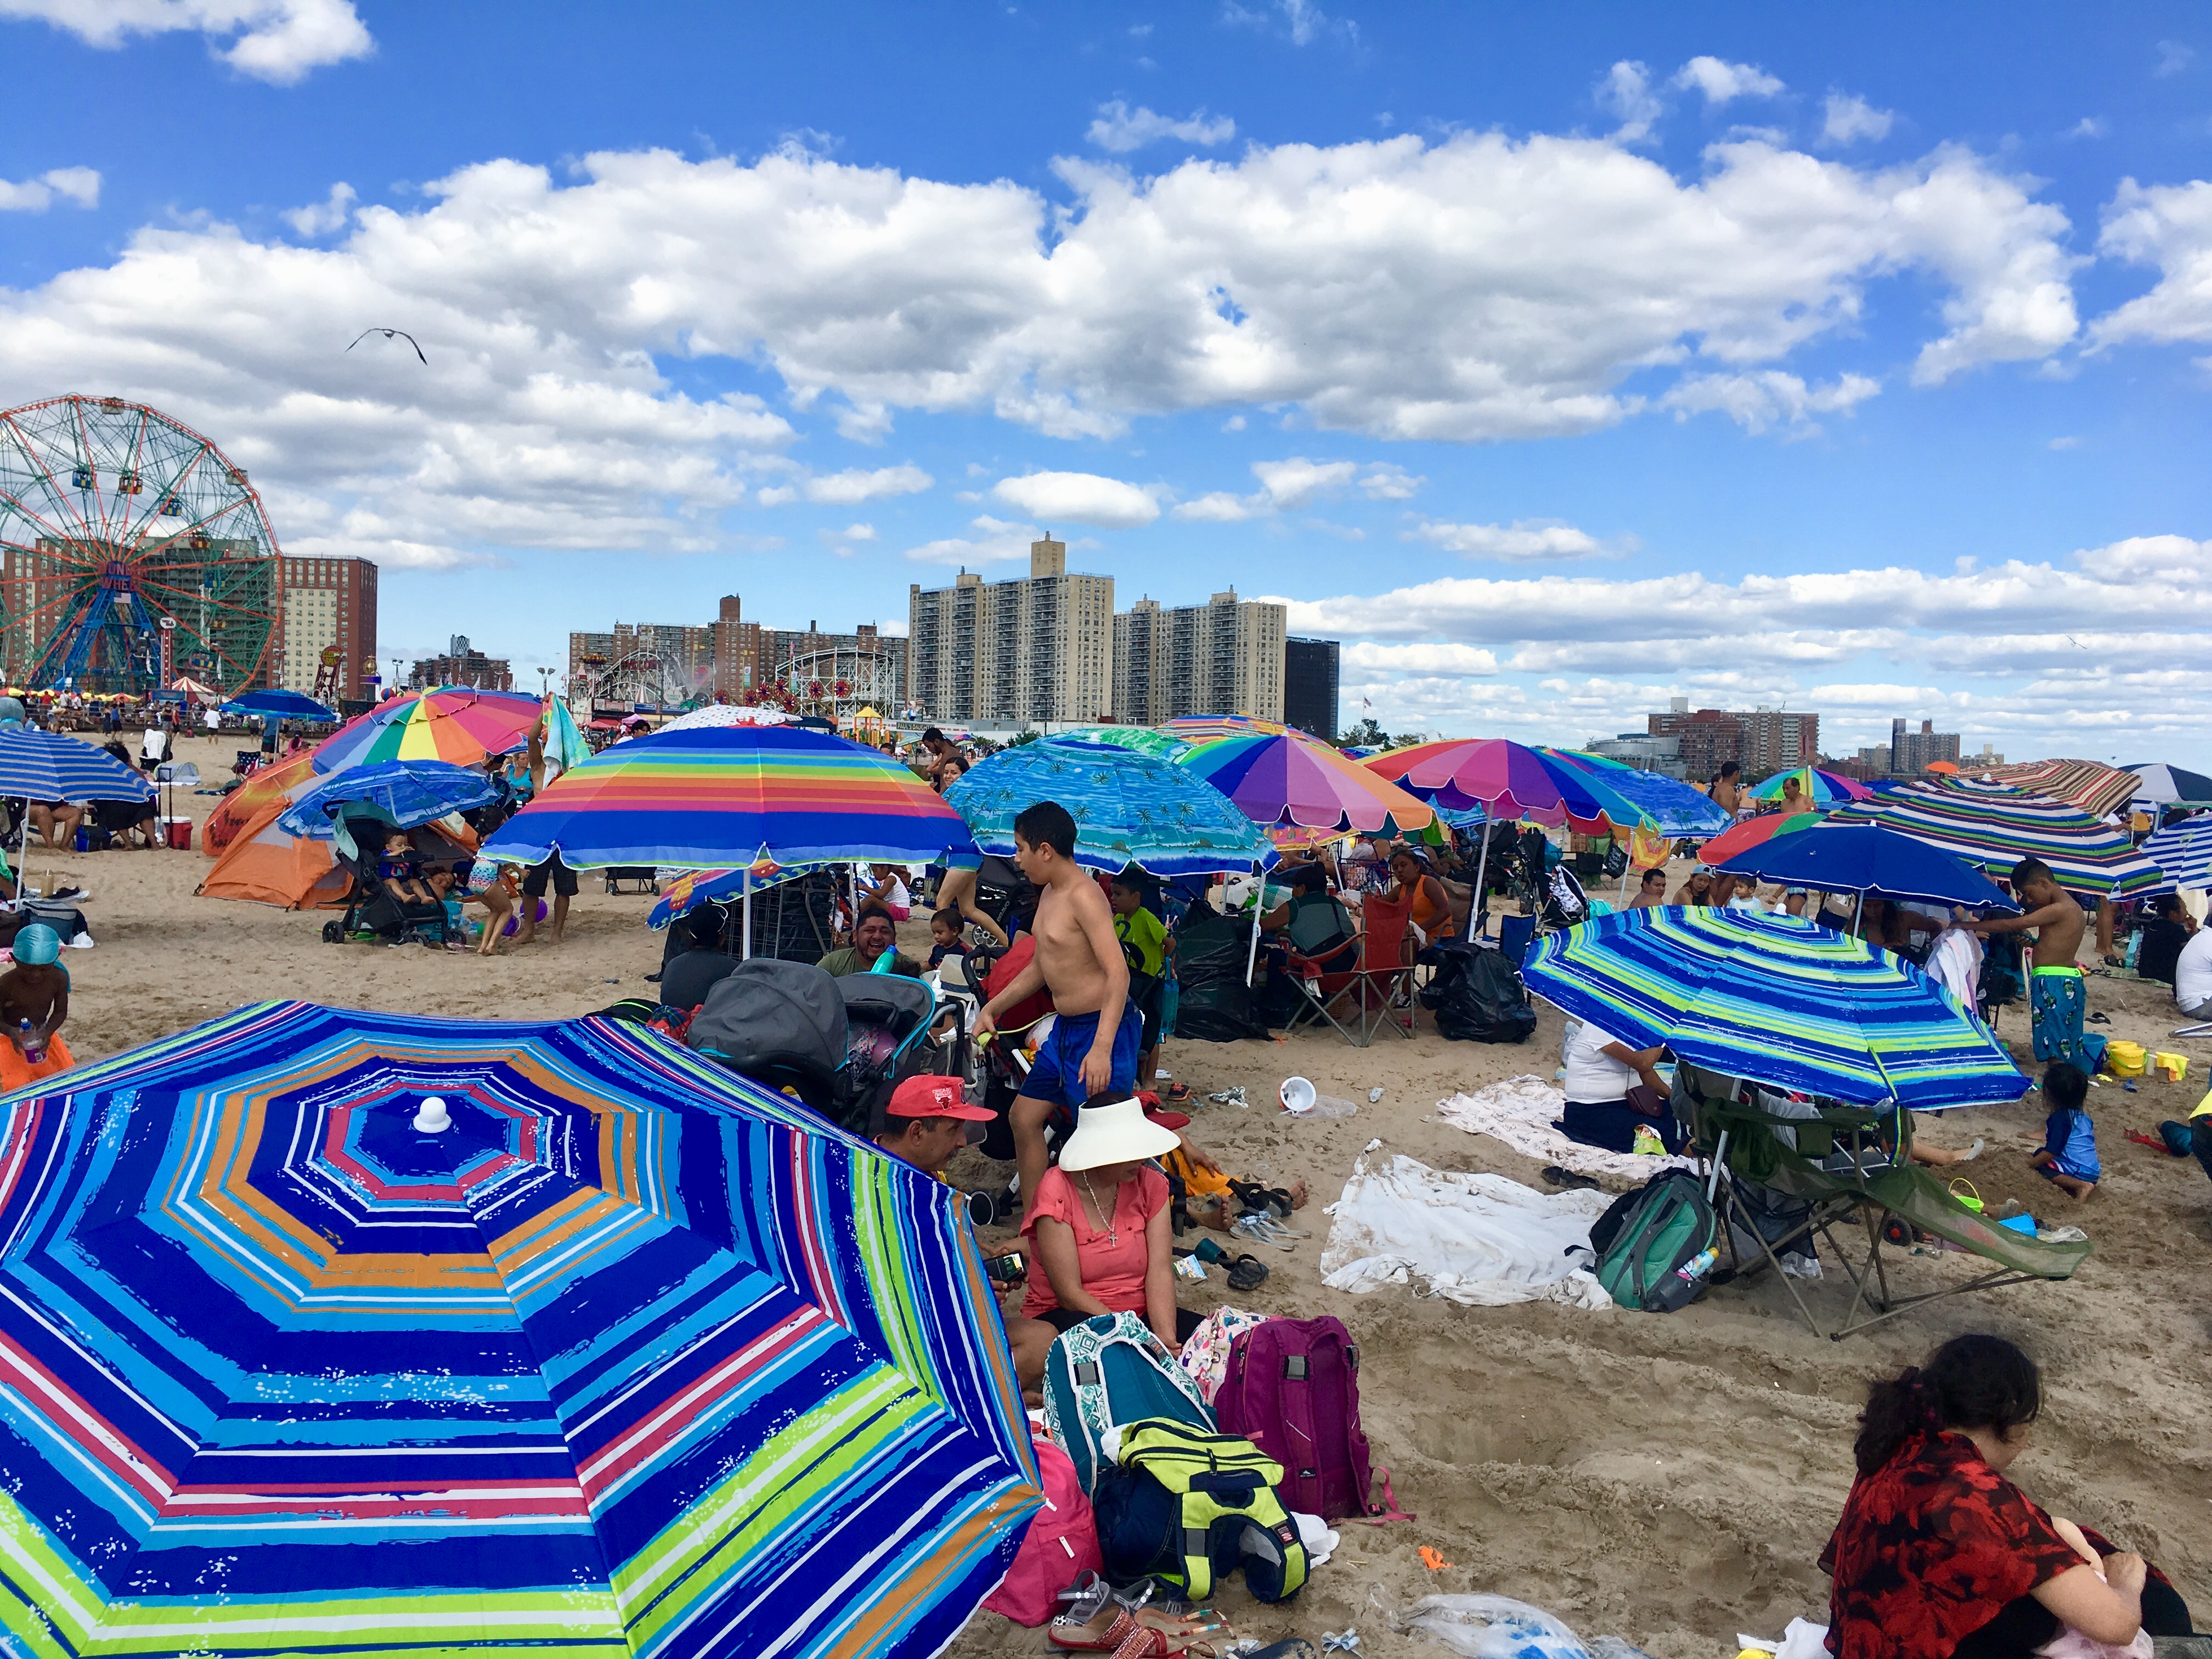 Umbrellas as far as the eye can see on Coney Island Beach. Eagle photo by Lore Croghan